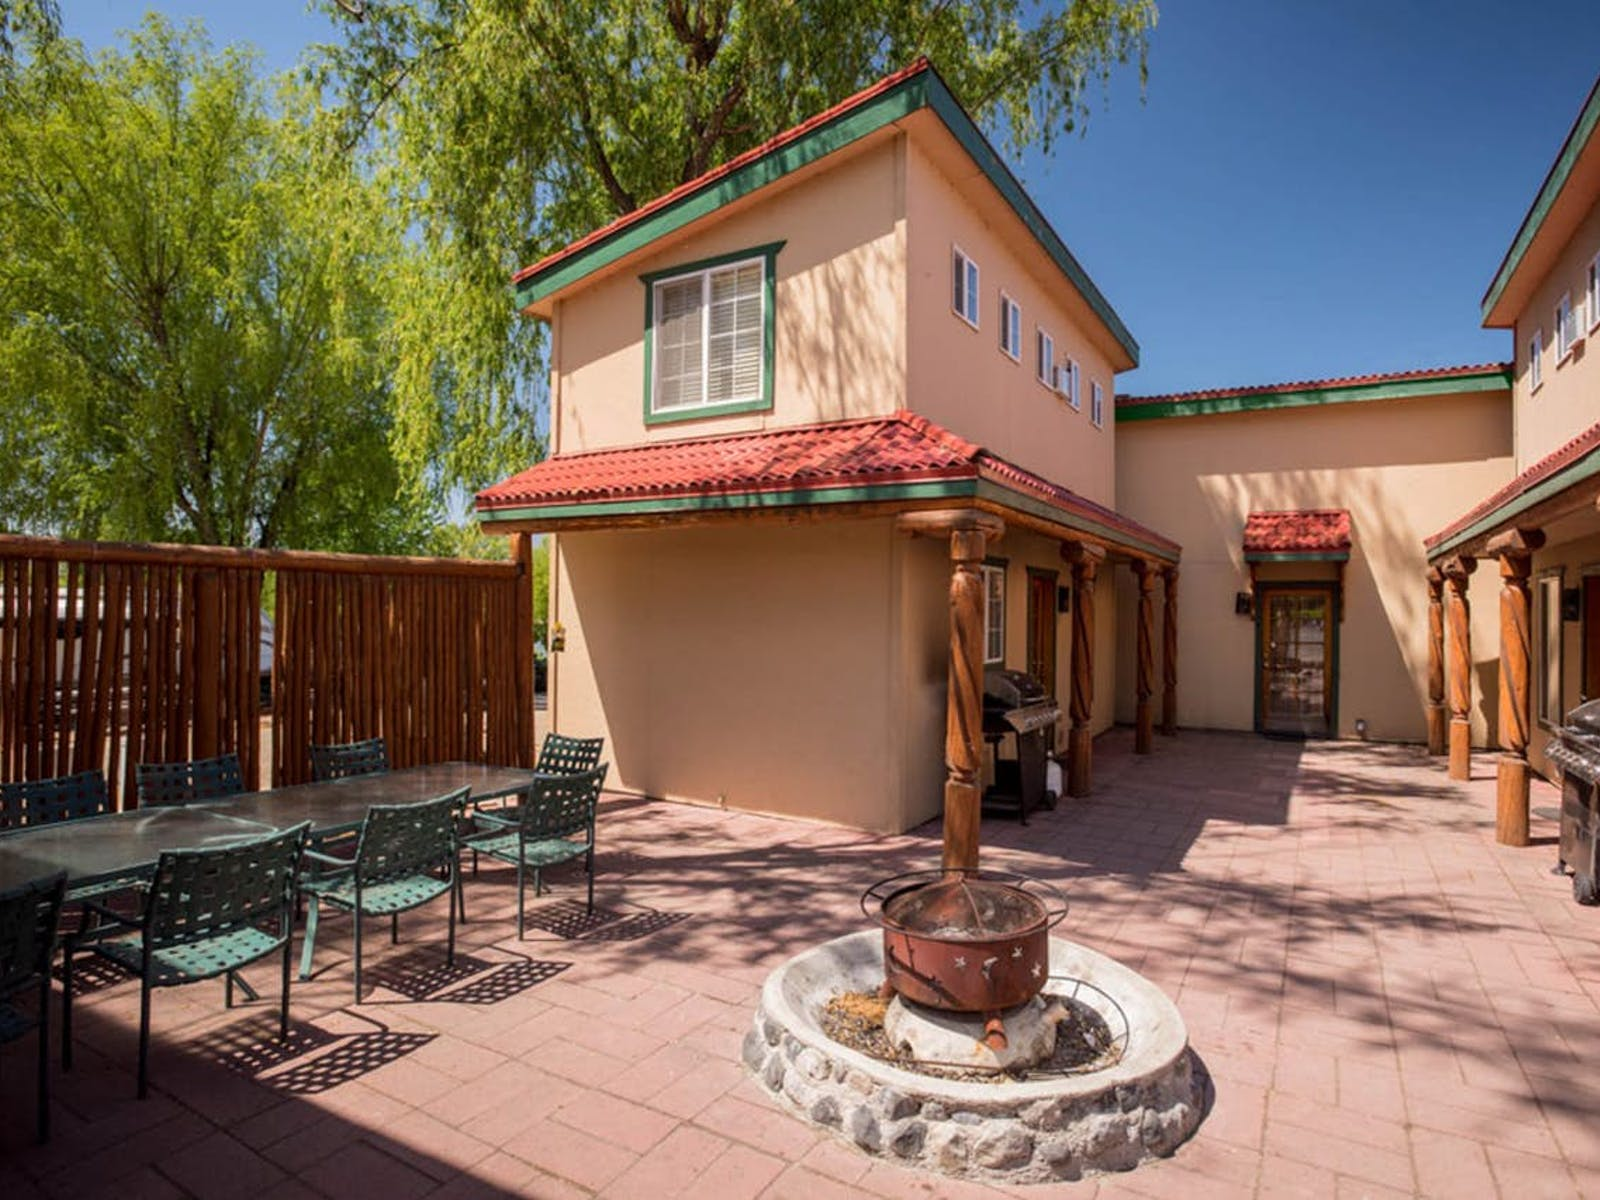 Sunbanks vacation rental patio with fire-pit